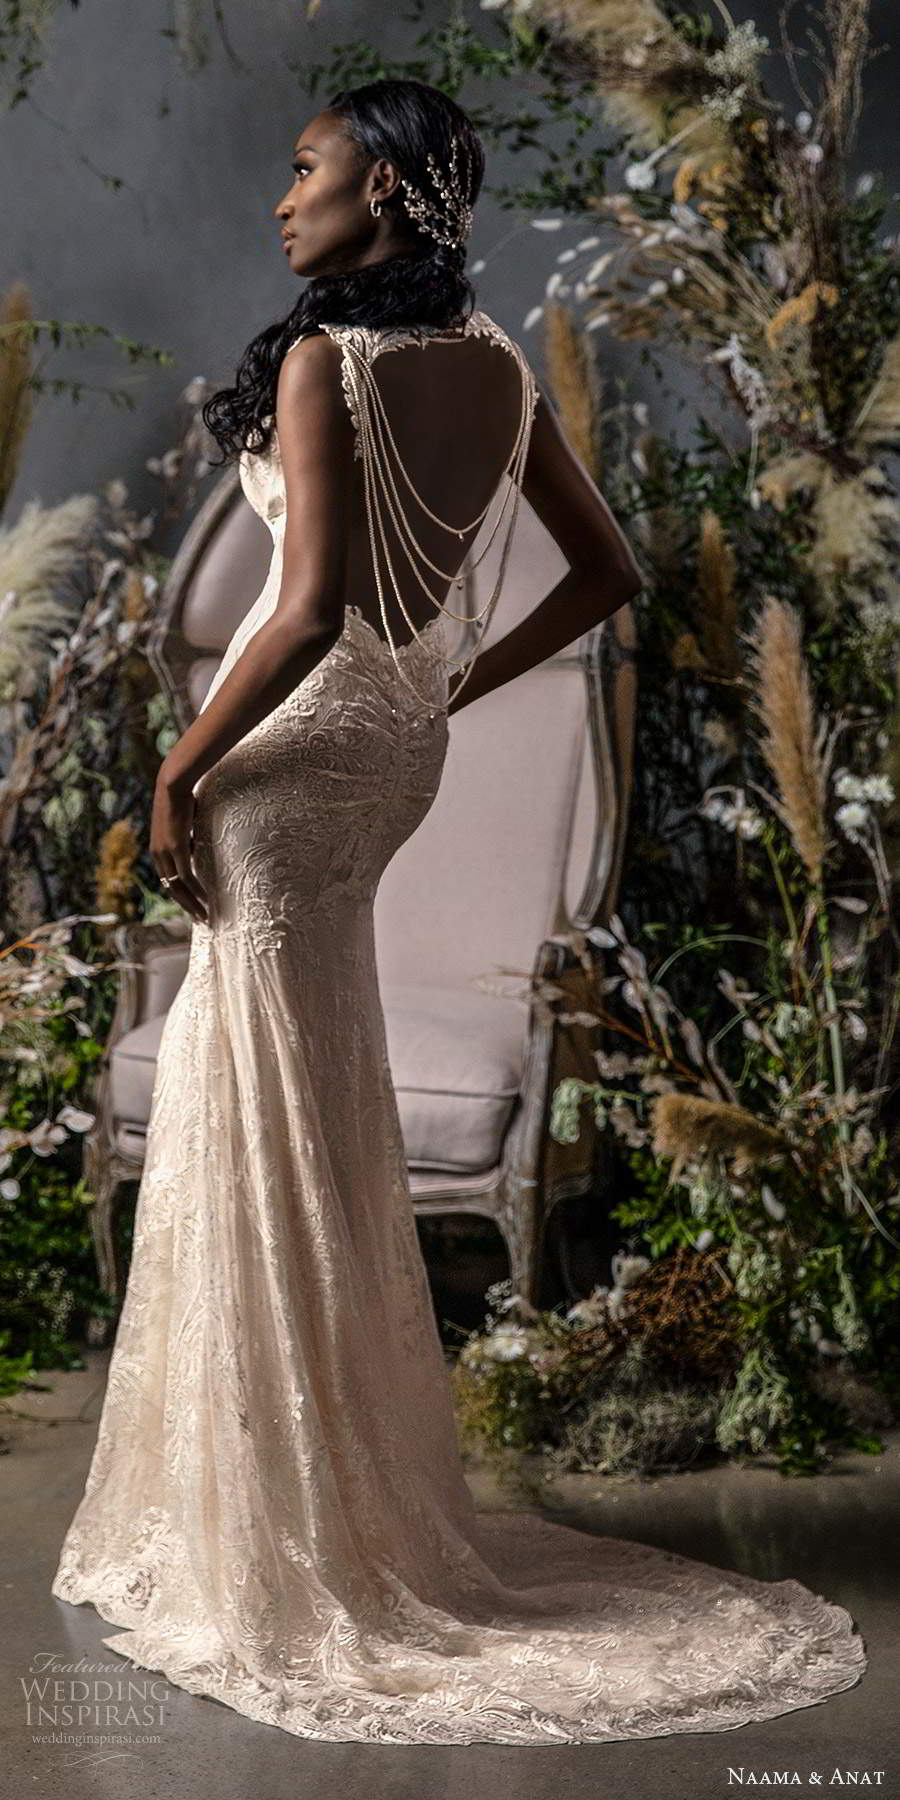 naama anat fall 2020 bridal sleeveless straps sweetheart neckline fully embellished fit flare a line wedding dress sweep train keyhole back (8) bv